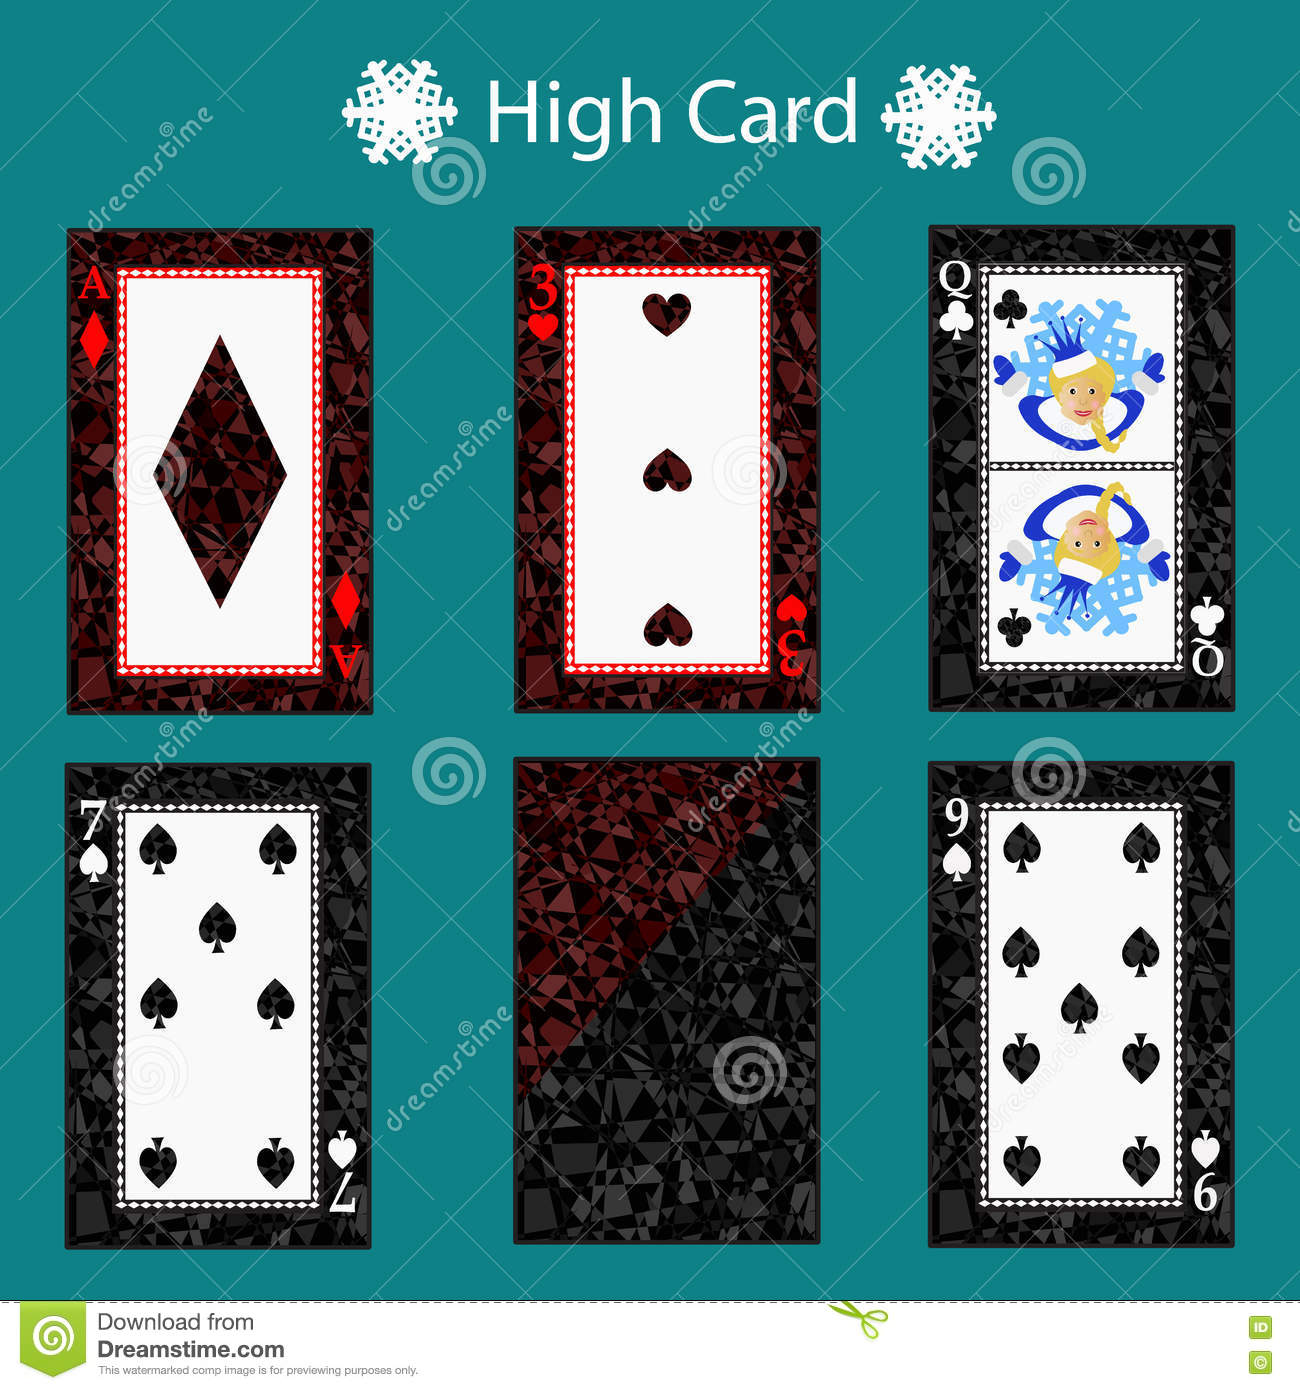 high card poker